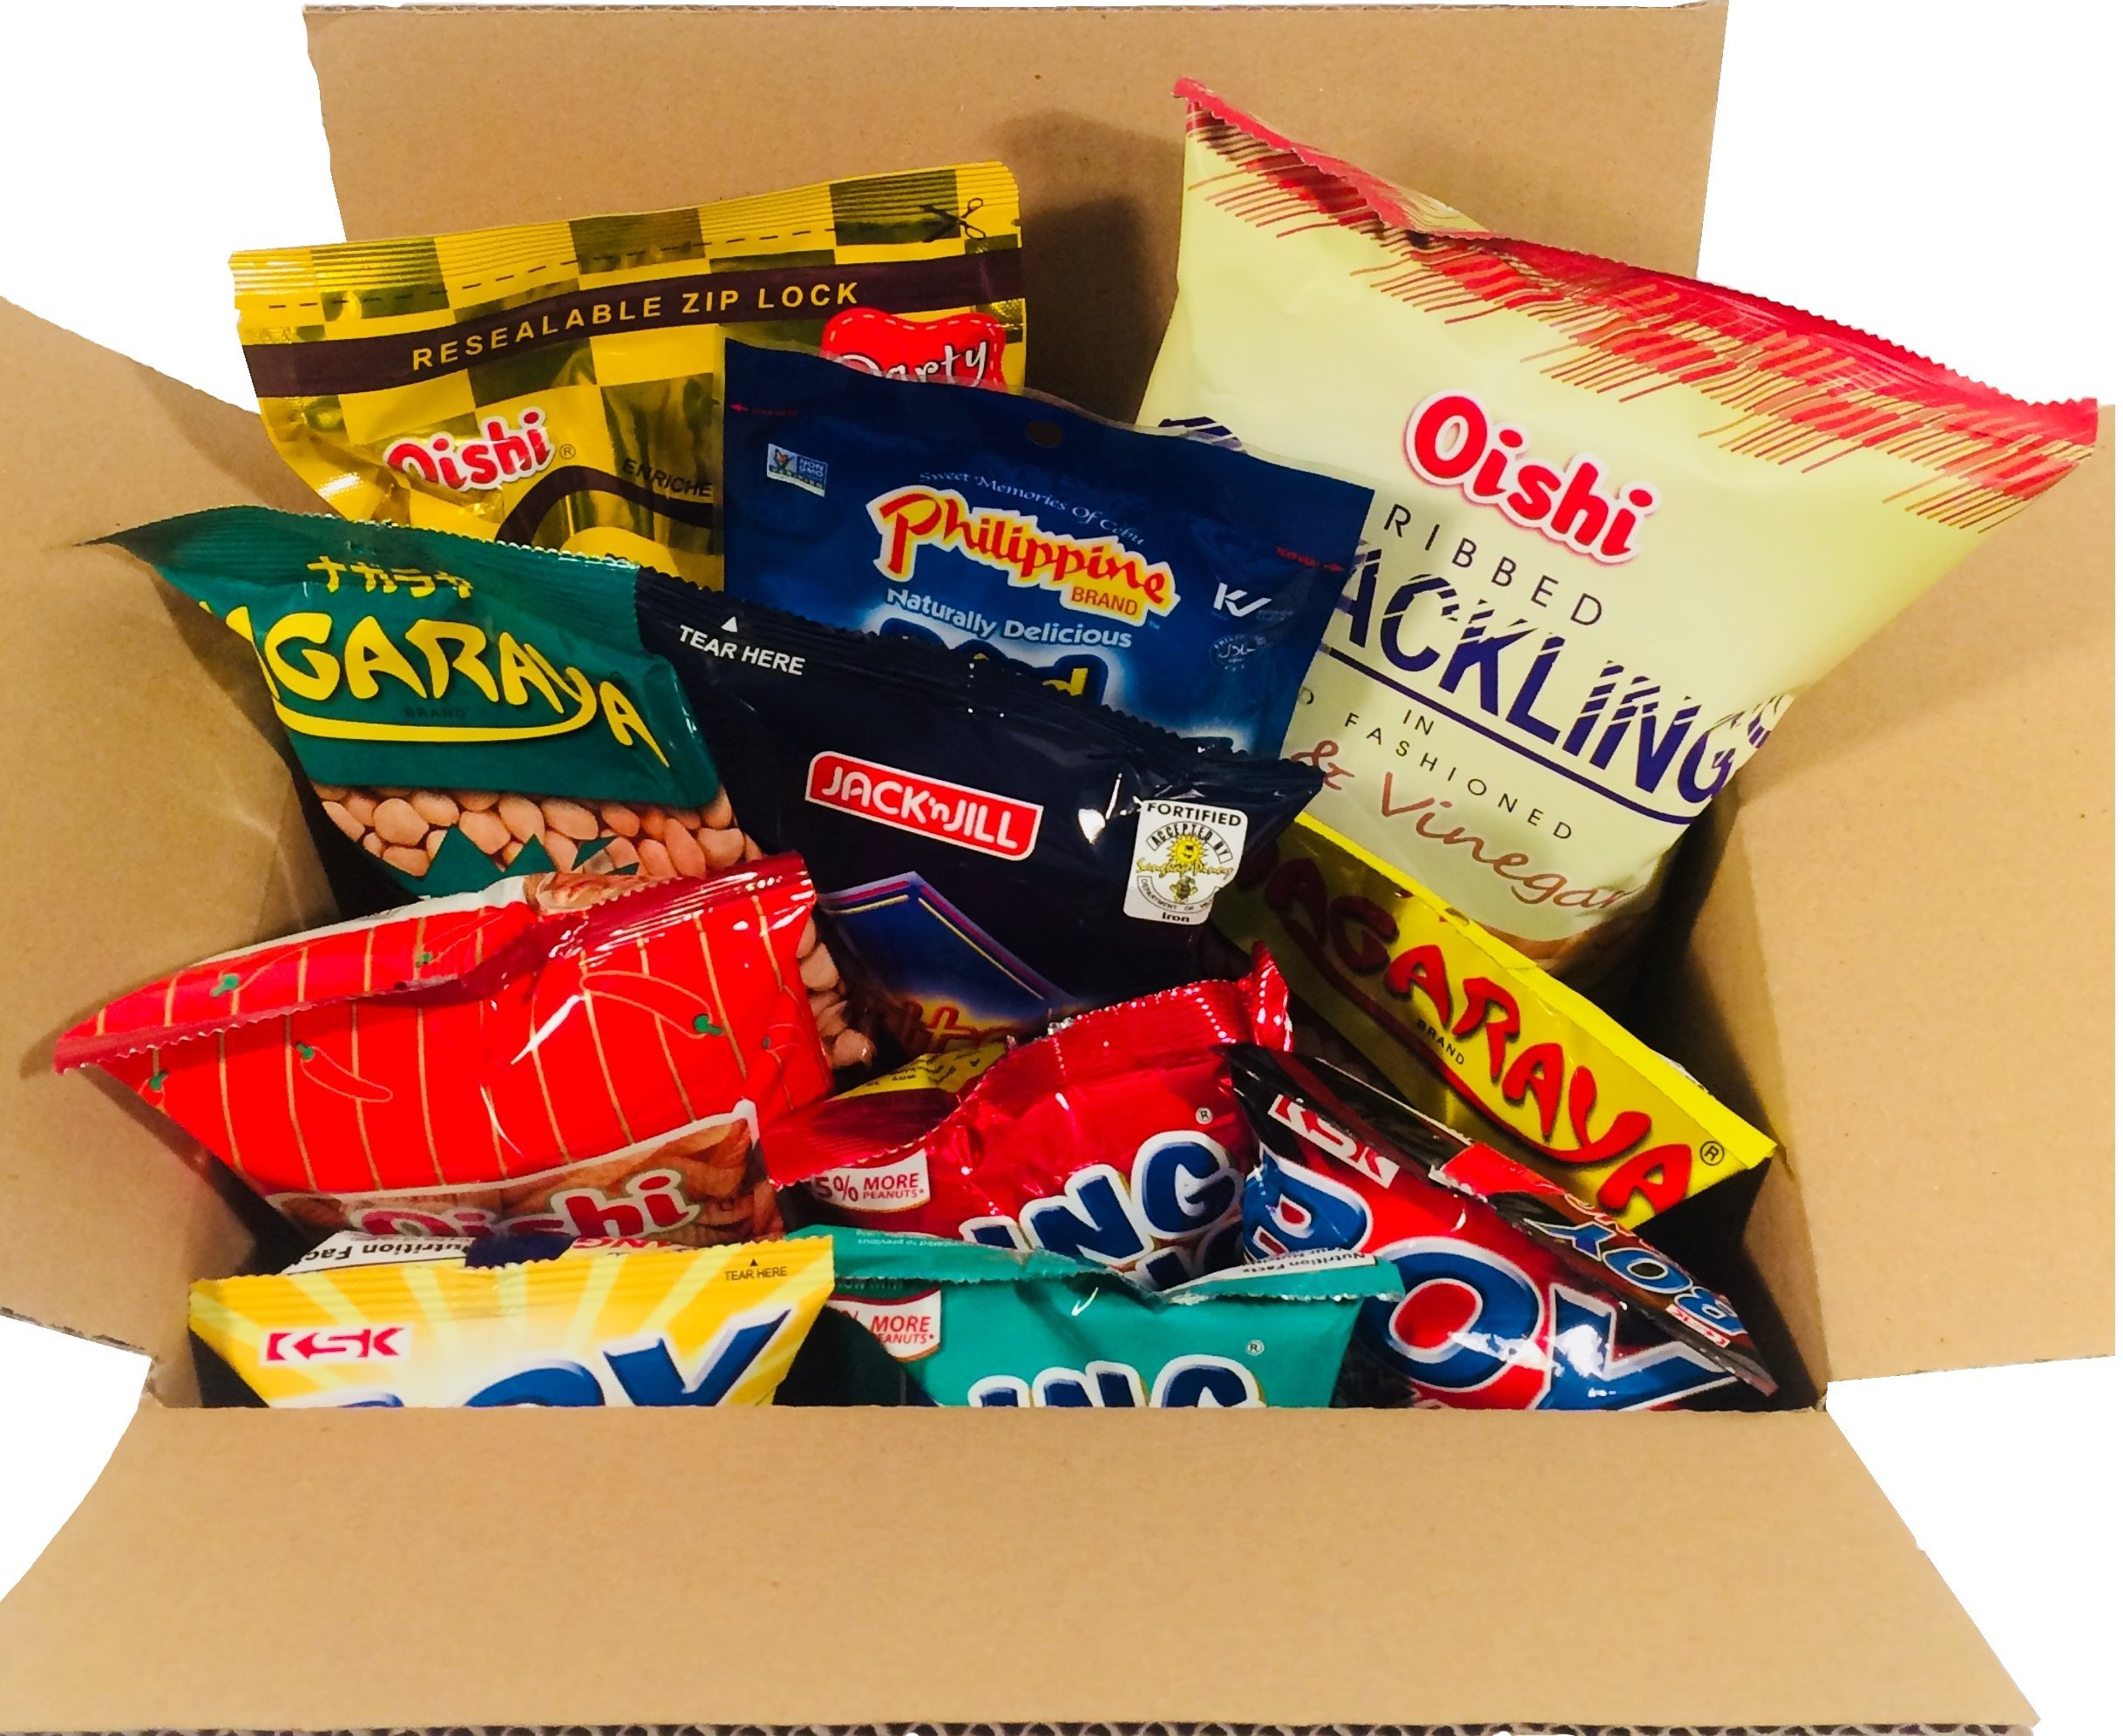 Balikbayan Snacks Box- Variety Assortment of Classic Filipino Snacks (9 counts Total) by World Food Mission